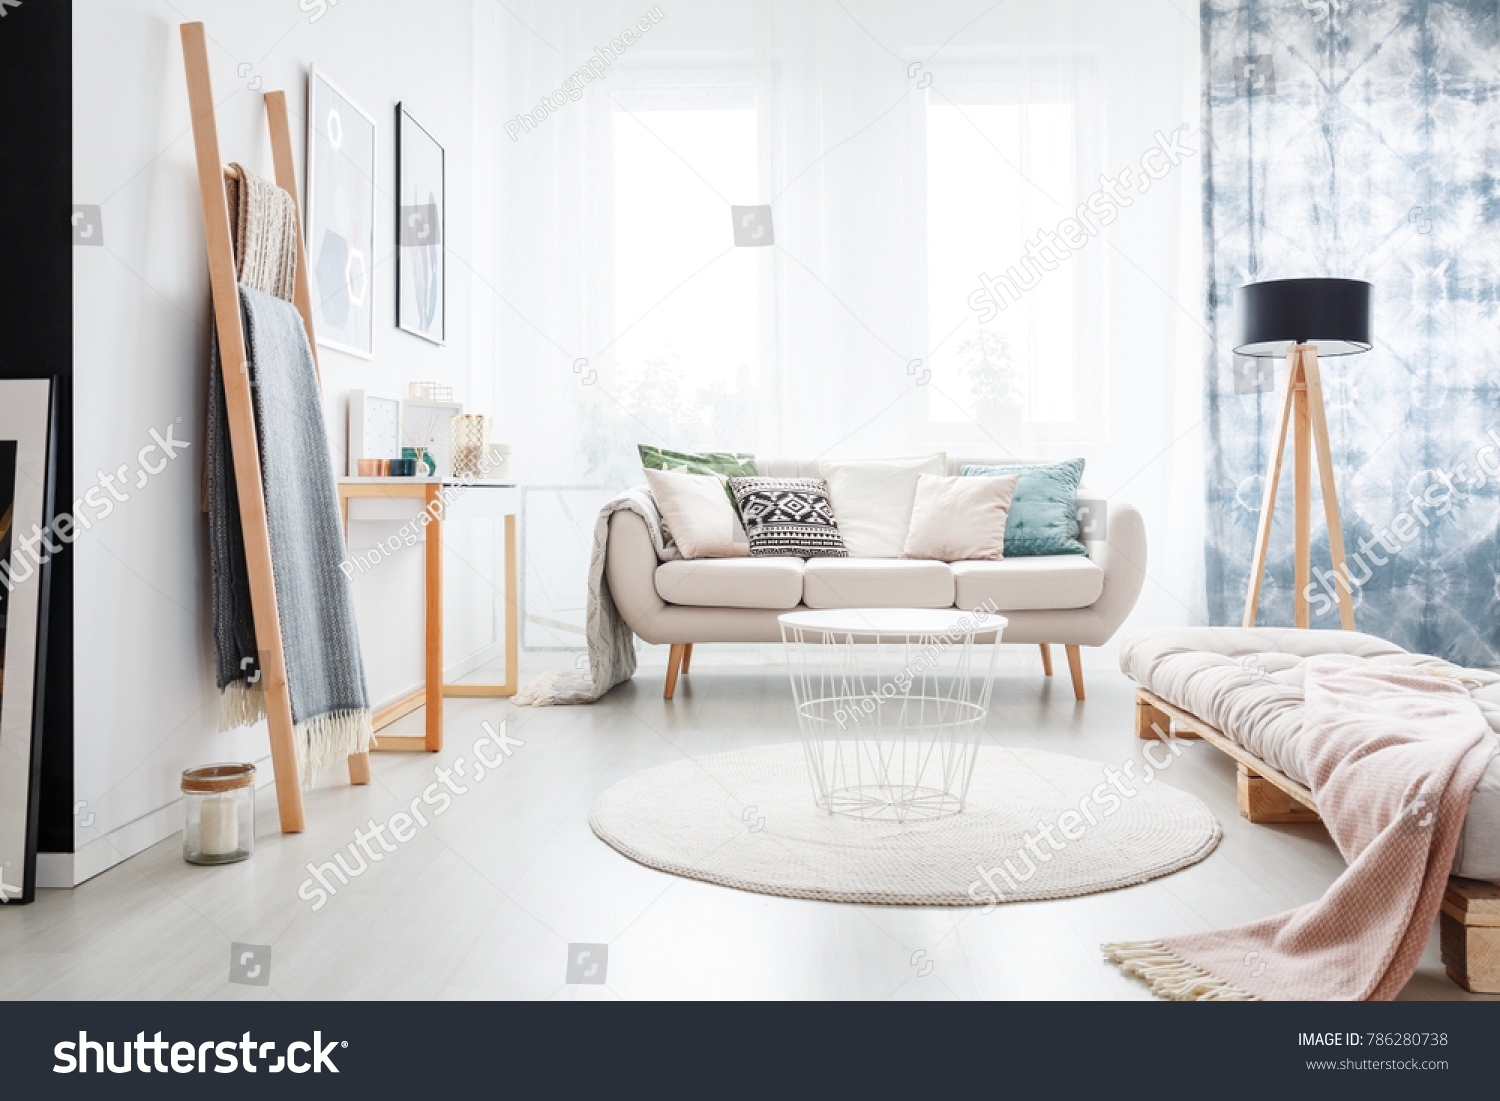 Minimalistic Boho Bedroom Interior Beige Mattress Stock Photo Edit Now 786280738